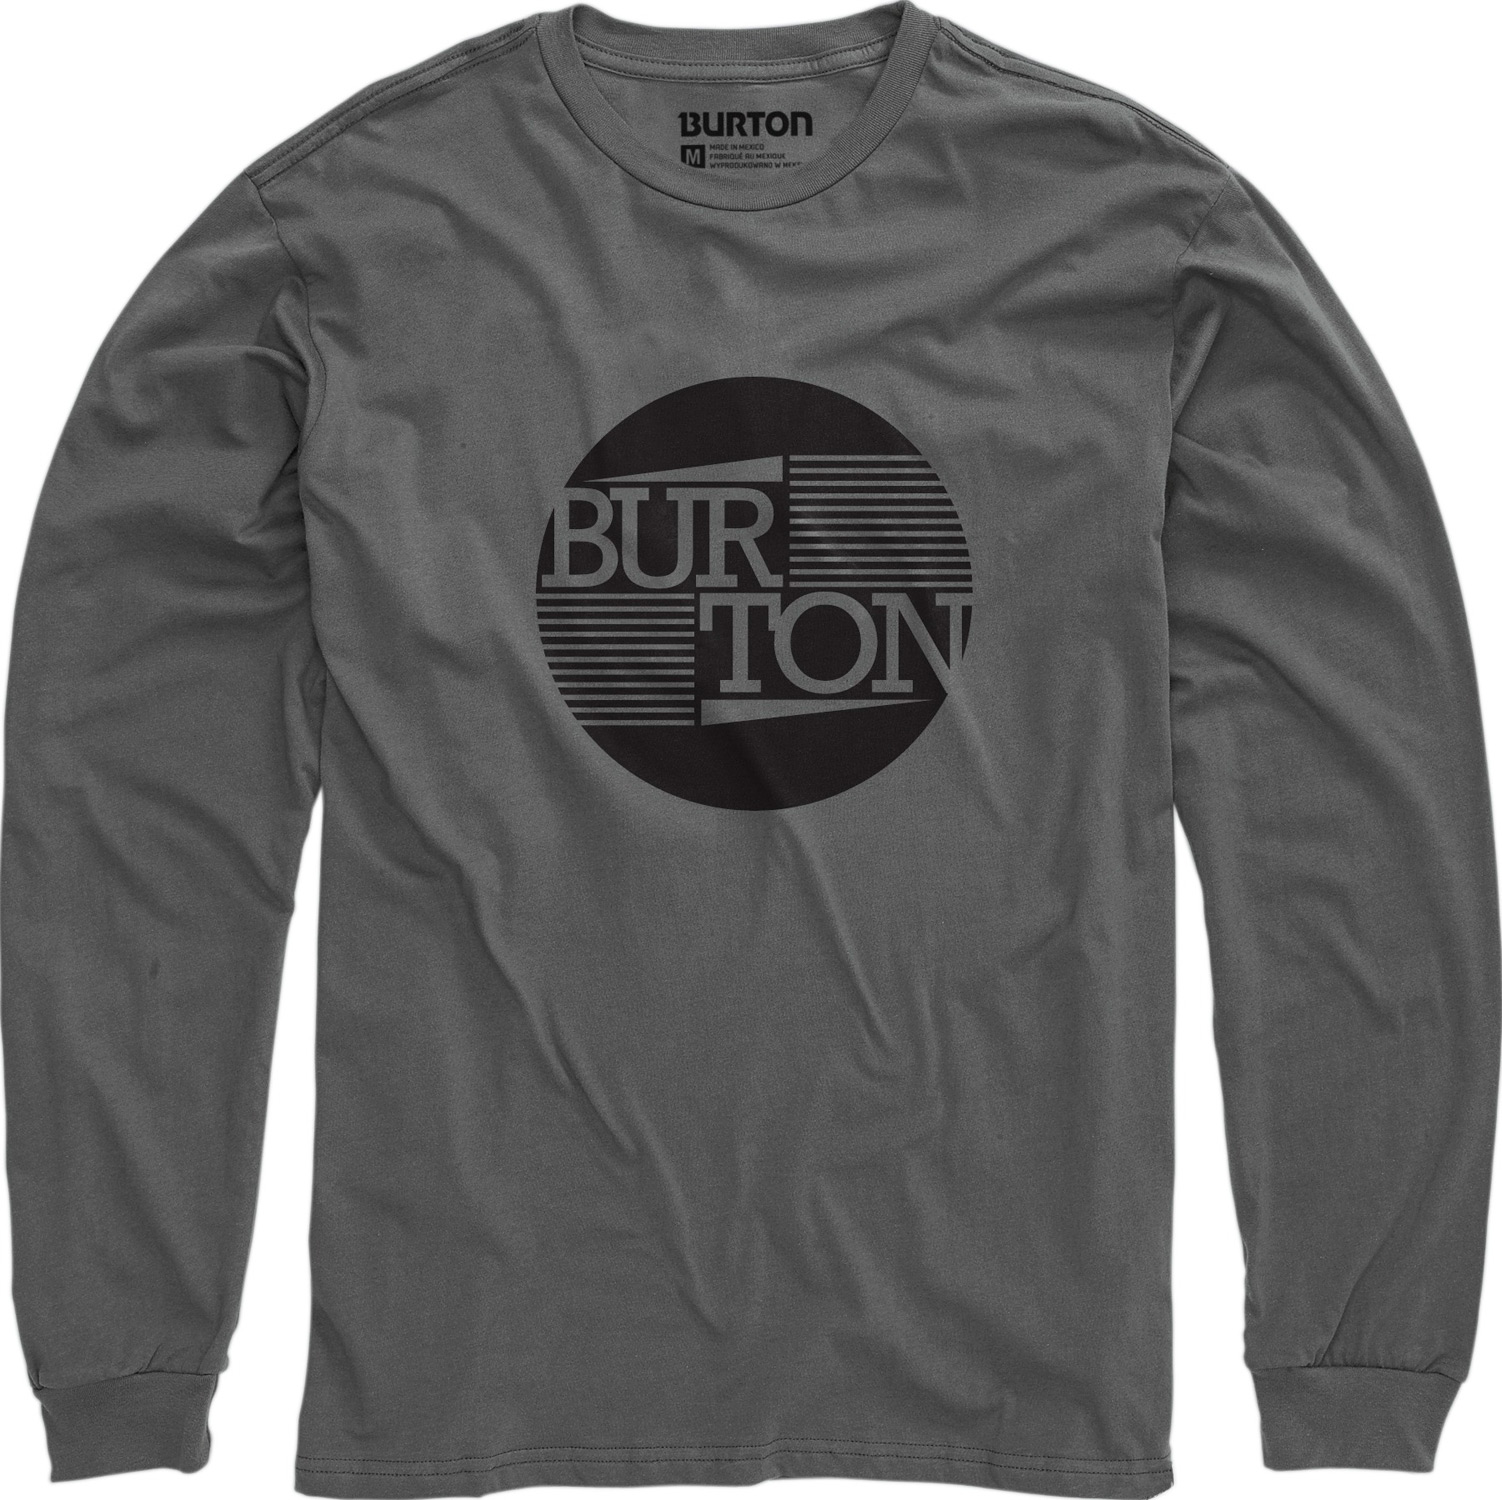 Snowboard Key Features of the Burton Gamma L/S T-Shirt: 100% Cotton Screen Print on Front Regular Fit - $12.95